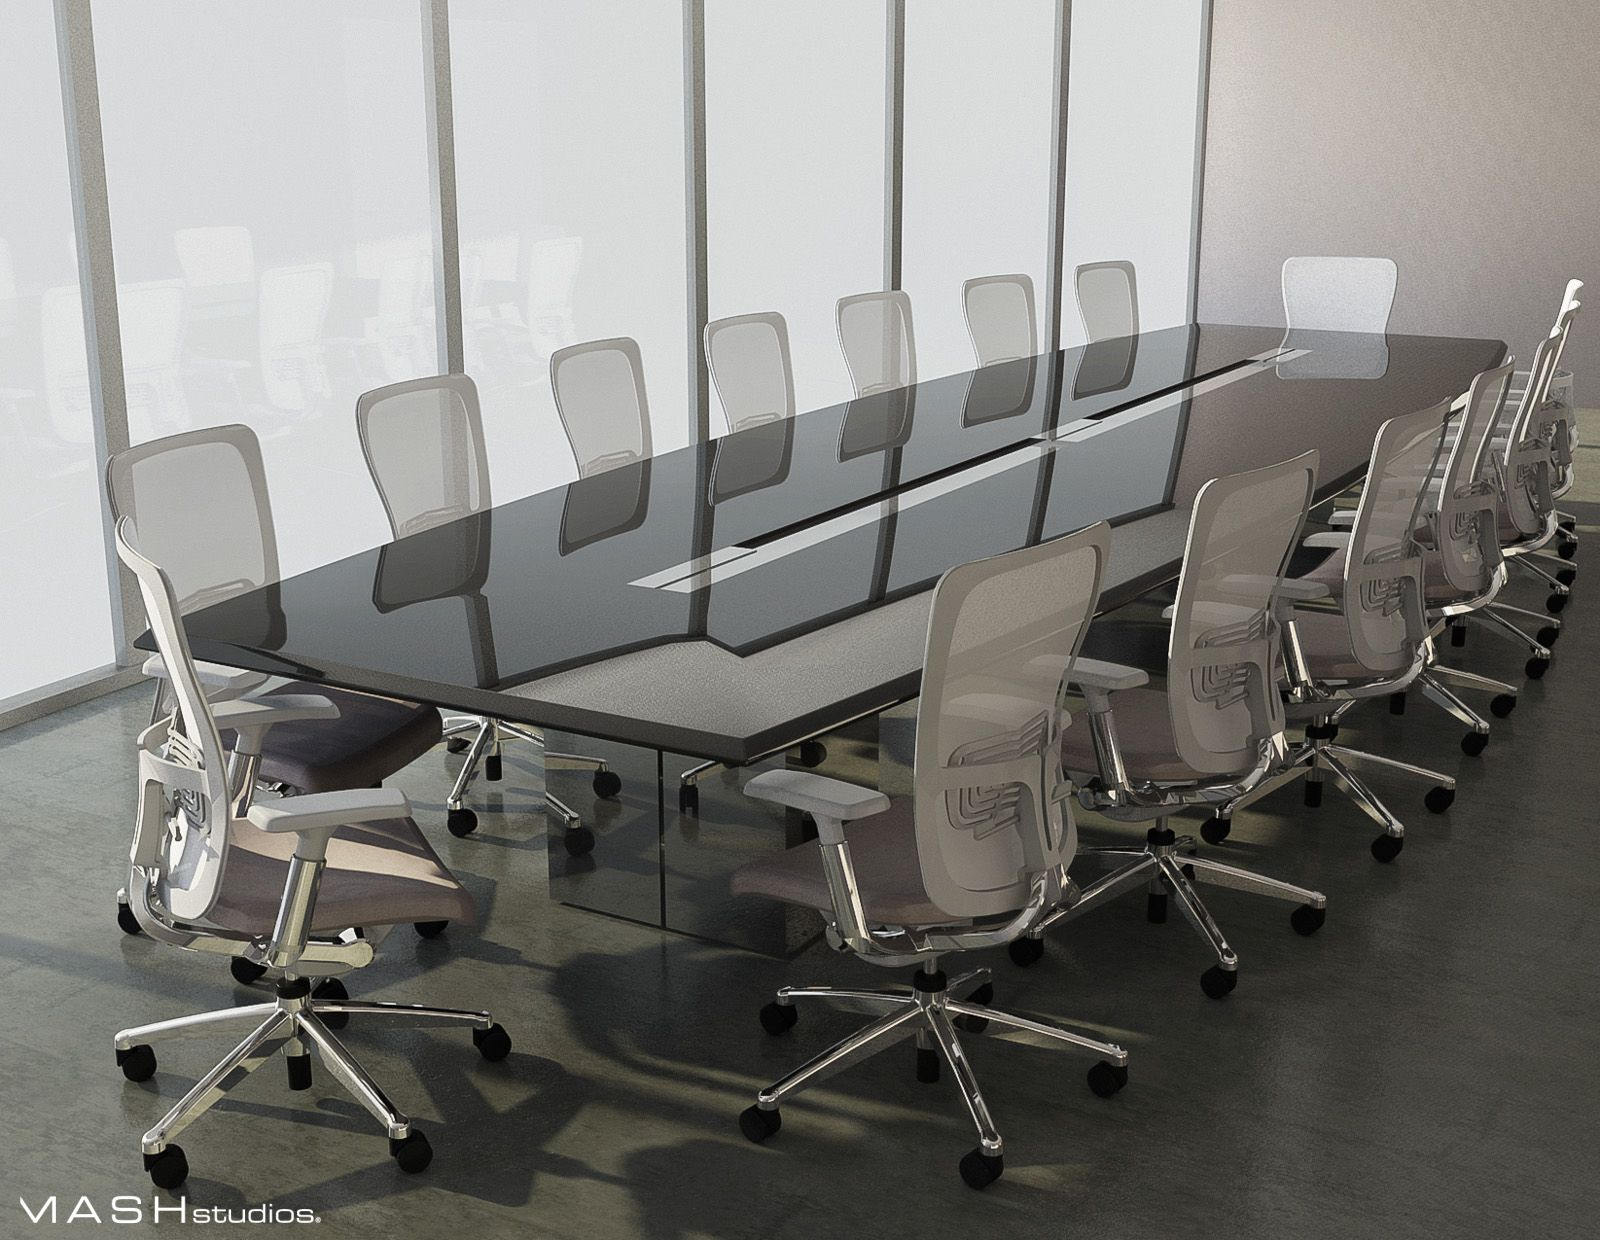 Mashstudios A Beautiful Rendering Of One Of Our Split Base Conference Table Designs Conference Table Design Custom Office Furniture Table Design